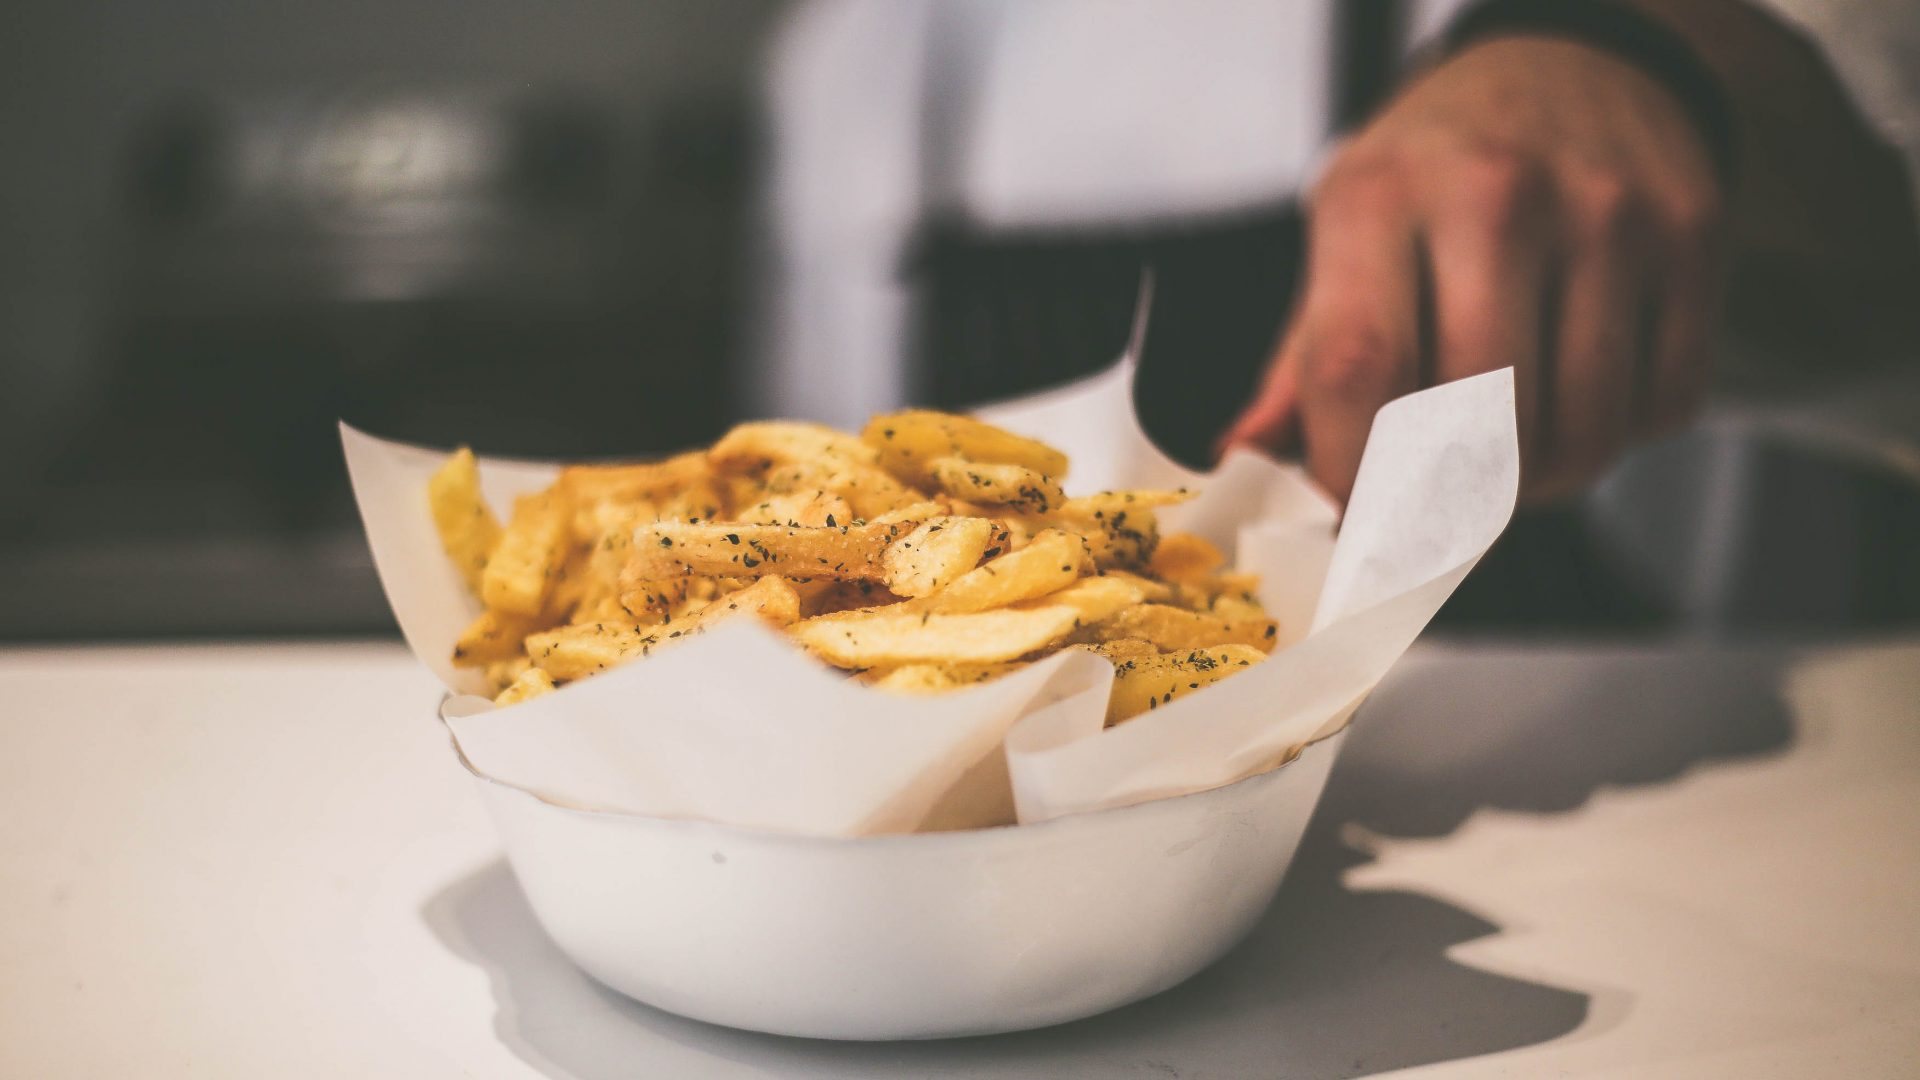 Athens street food: Hot chips make the perfect side for the fish served up daily at Zisis, Athens.